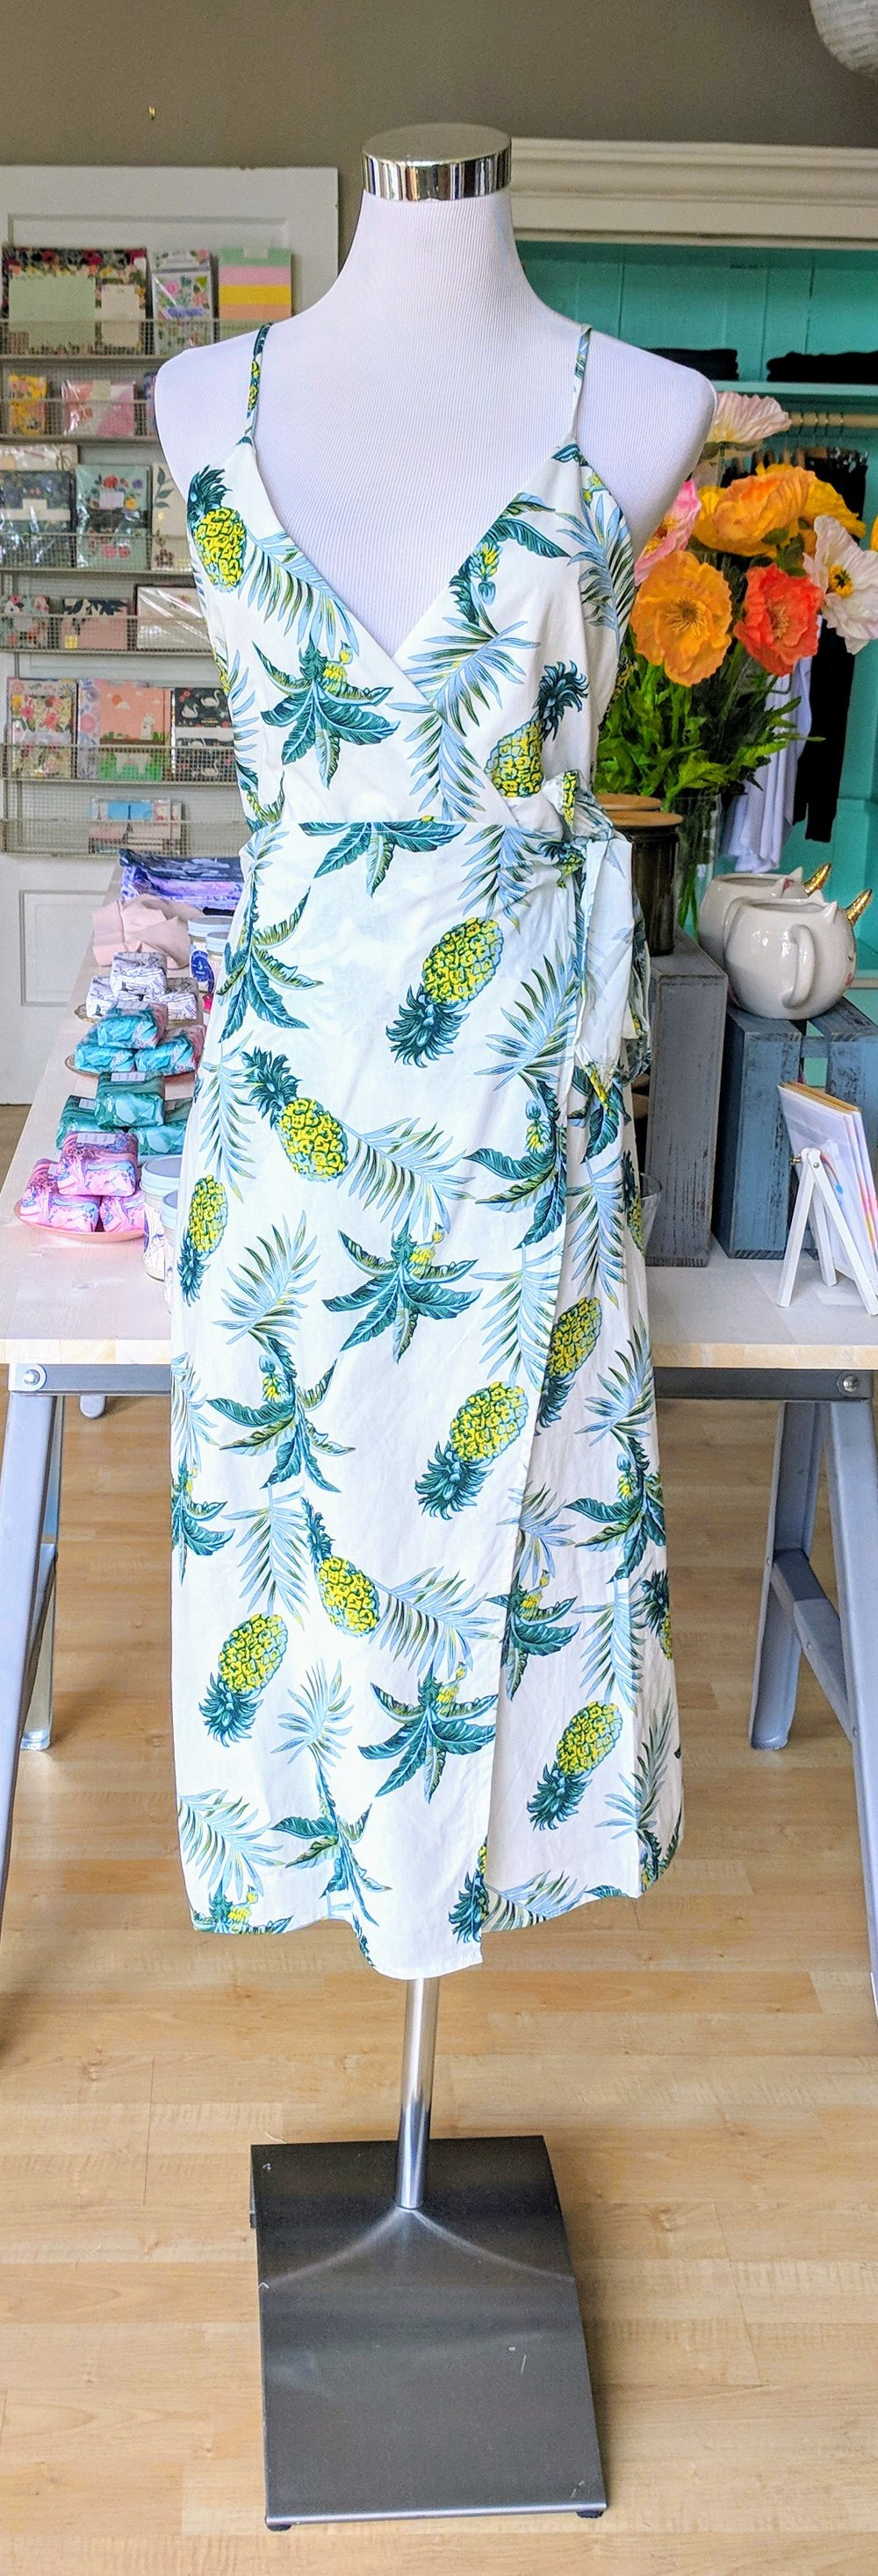 Pineapple print overlap dress with tie front.